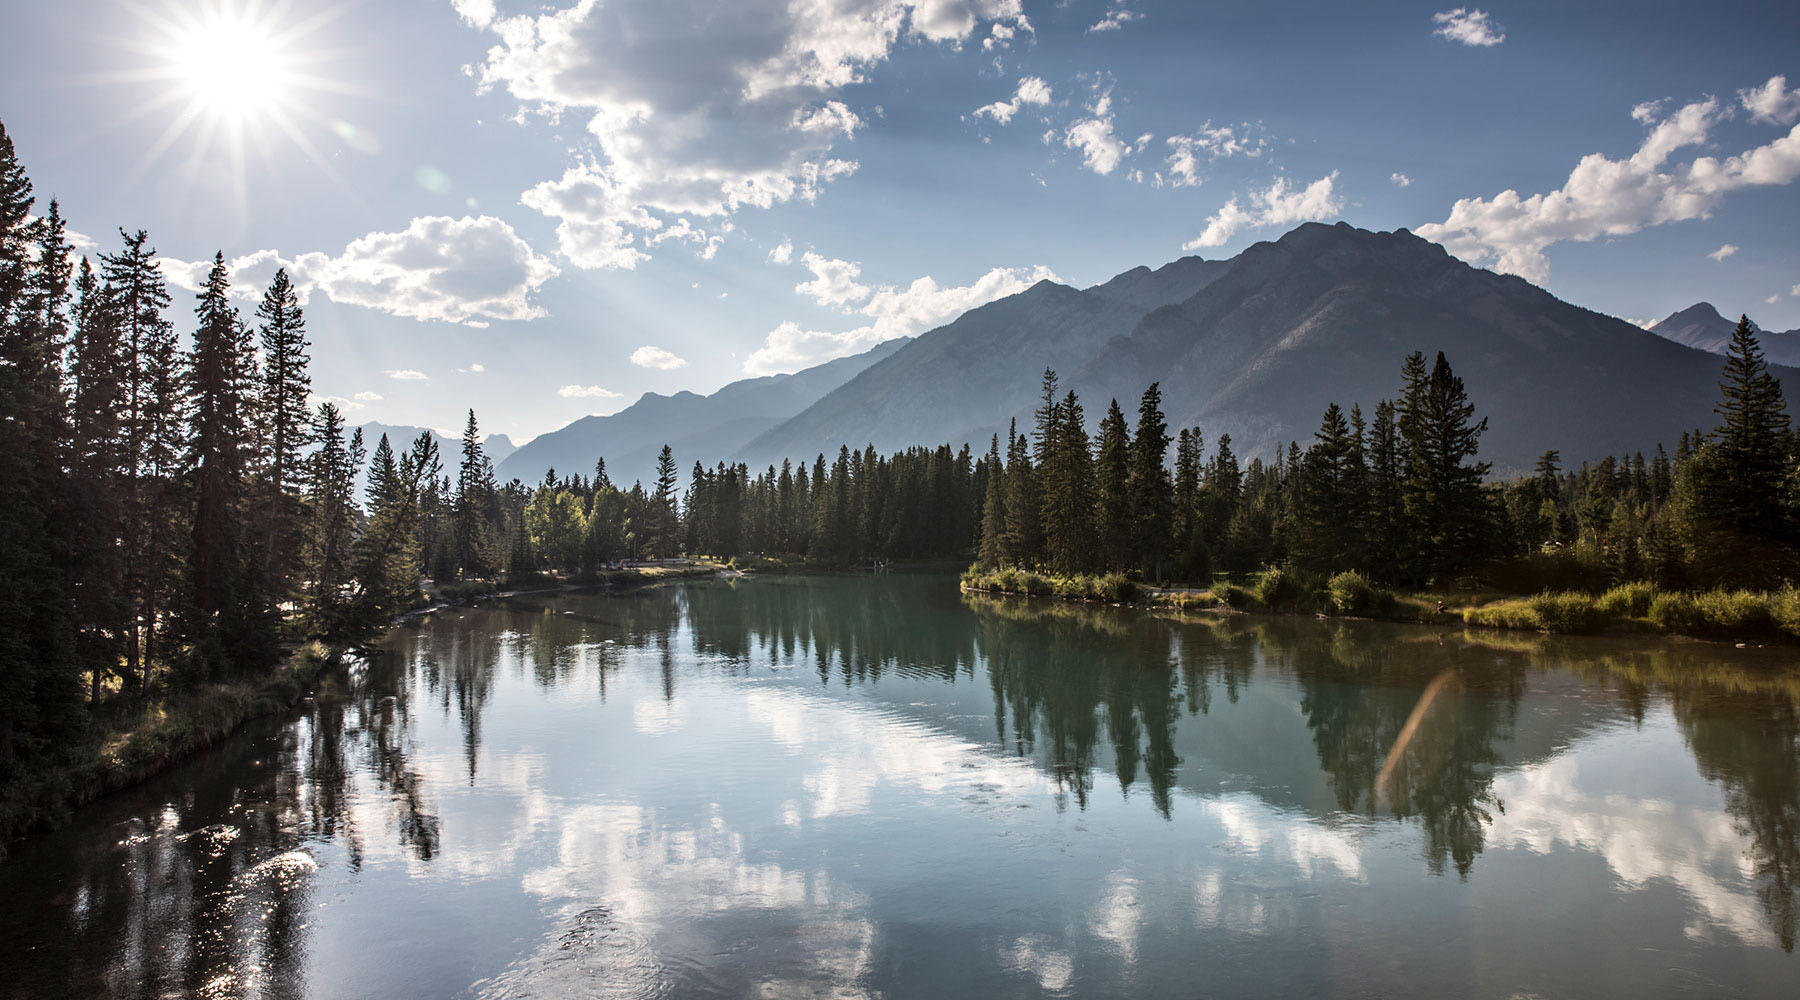 8n Alaska Adventure Amp 5n Pre Rocky Mountaineer 30 Jul 19